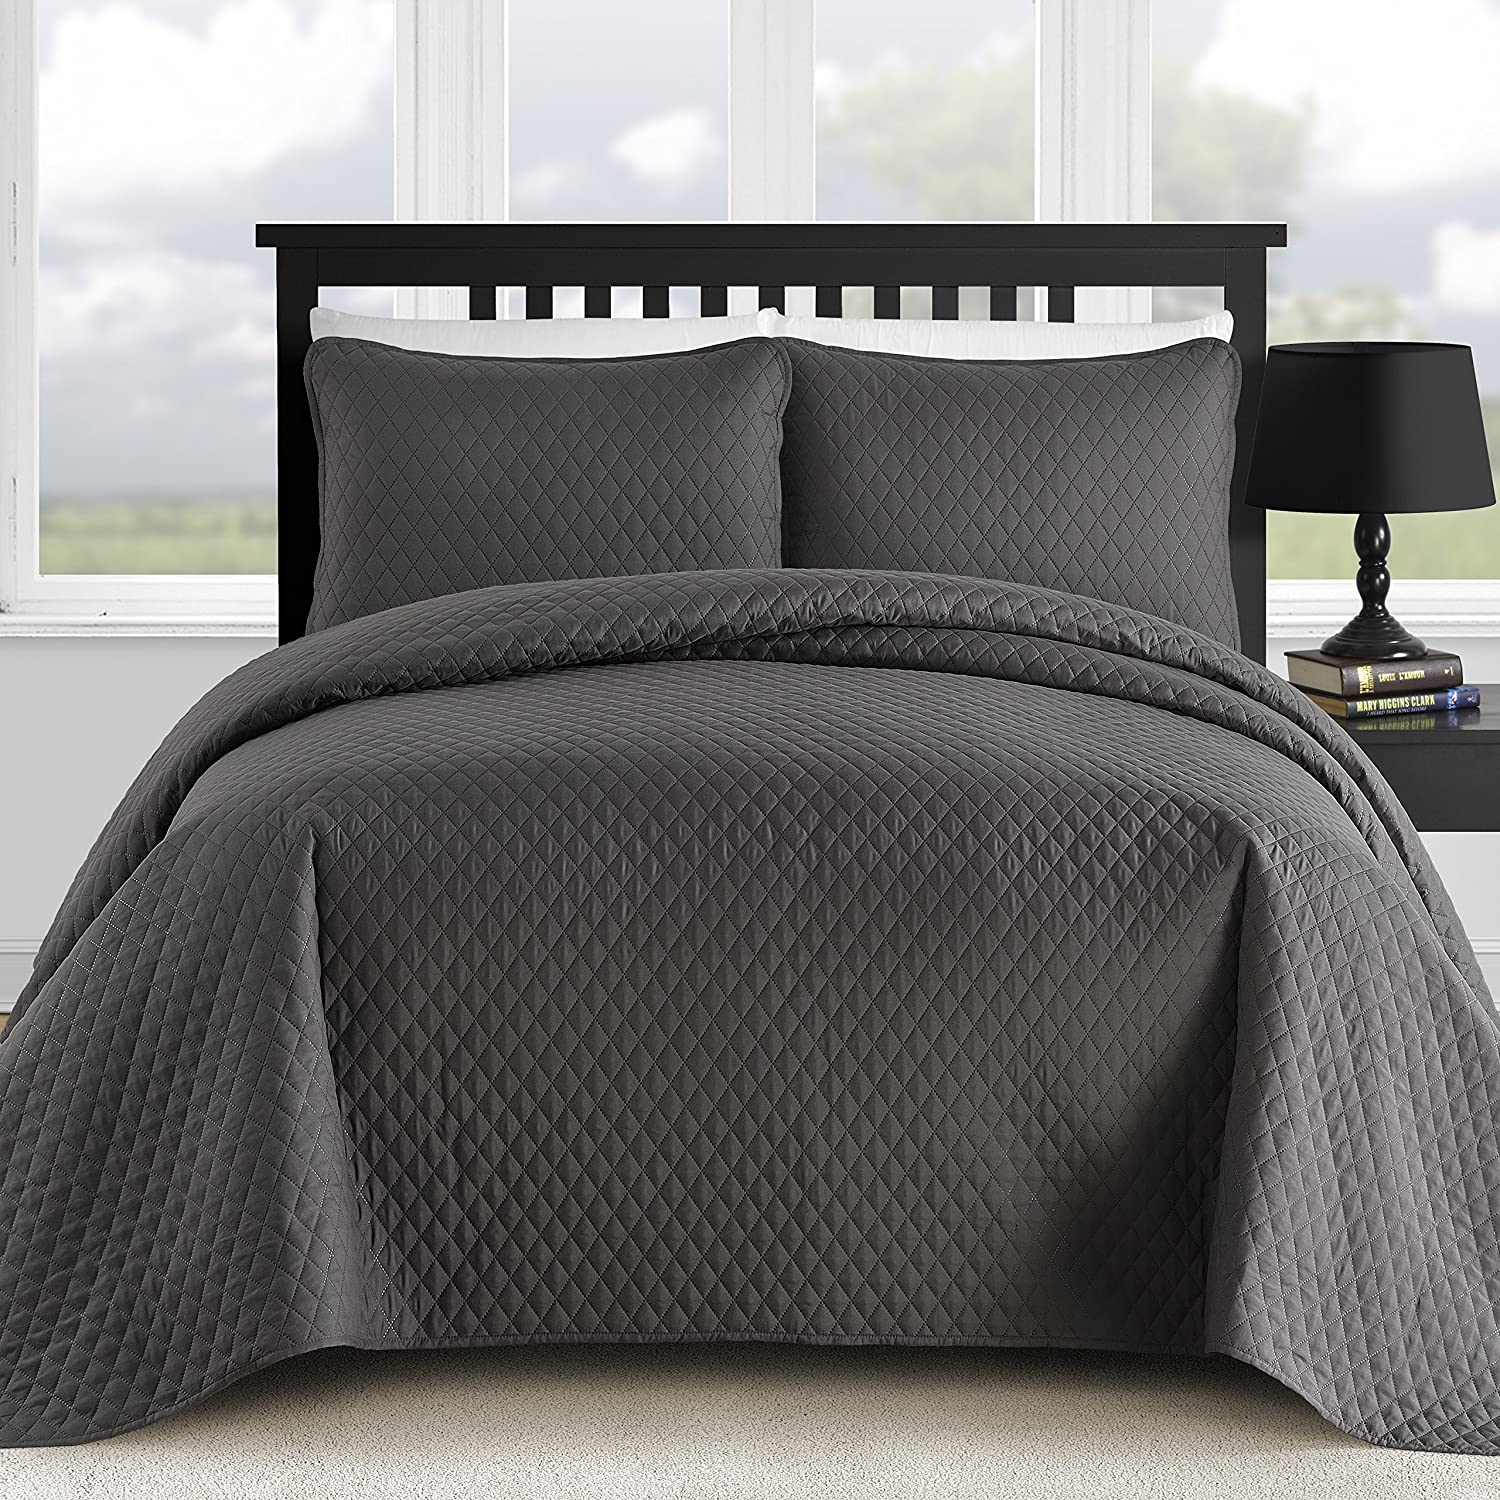 Comfy Bedding 3-Piece Bedspread Coverlet Set Extra Lightweight and Oversized Diamond Embossed, King/Cal King, Charcoal